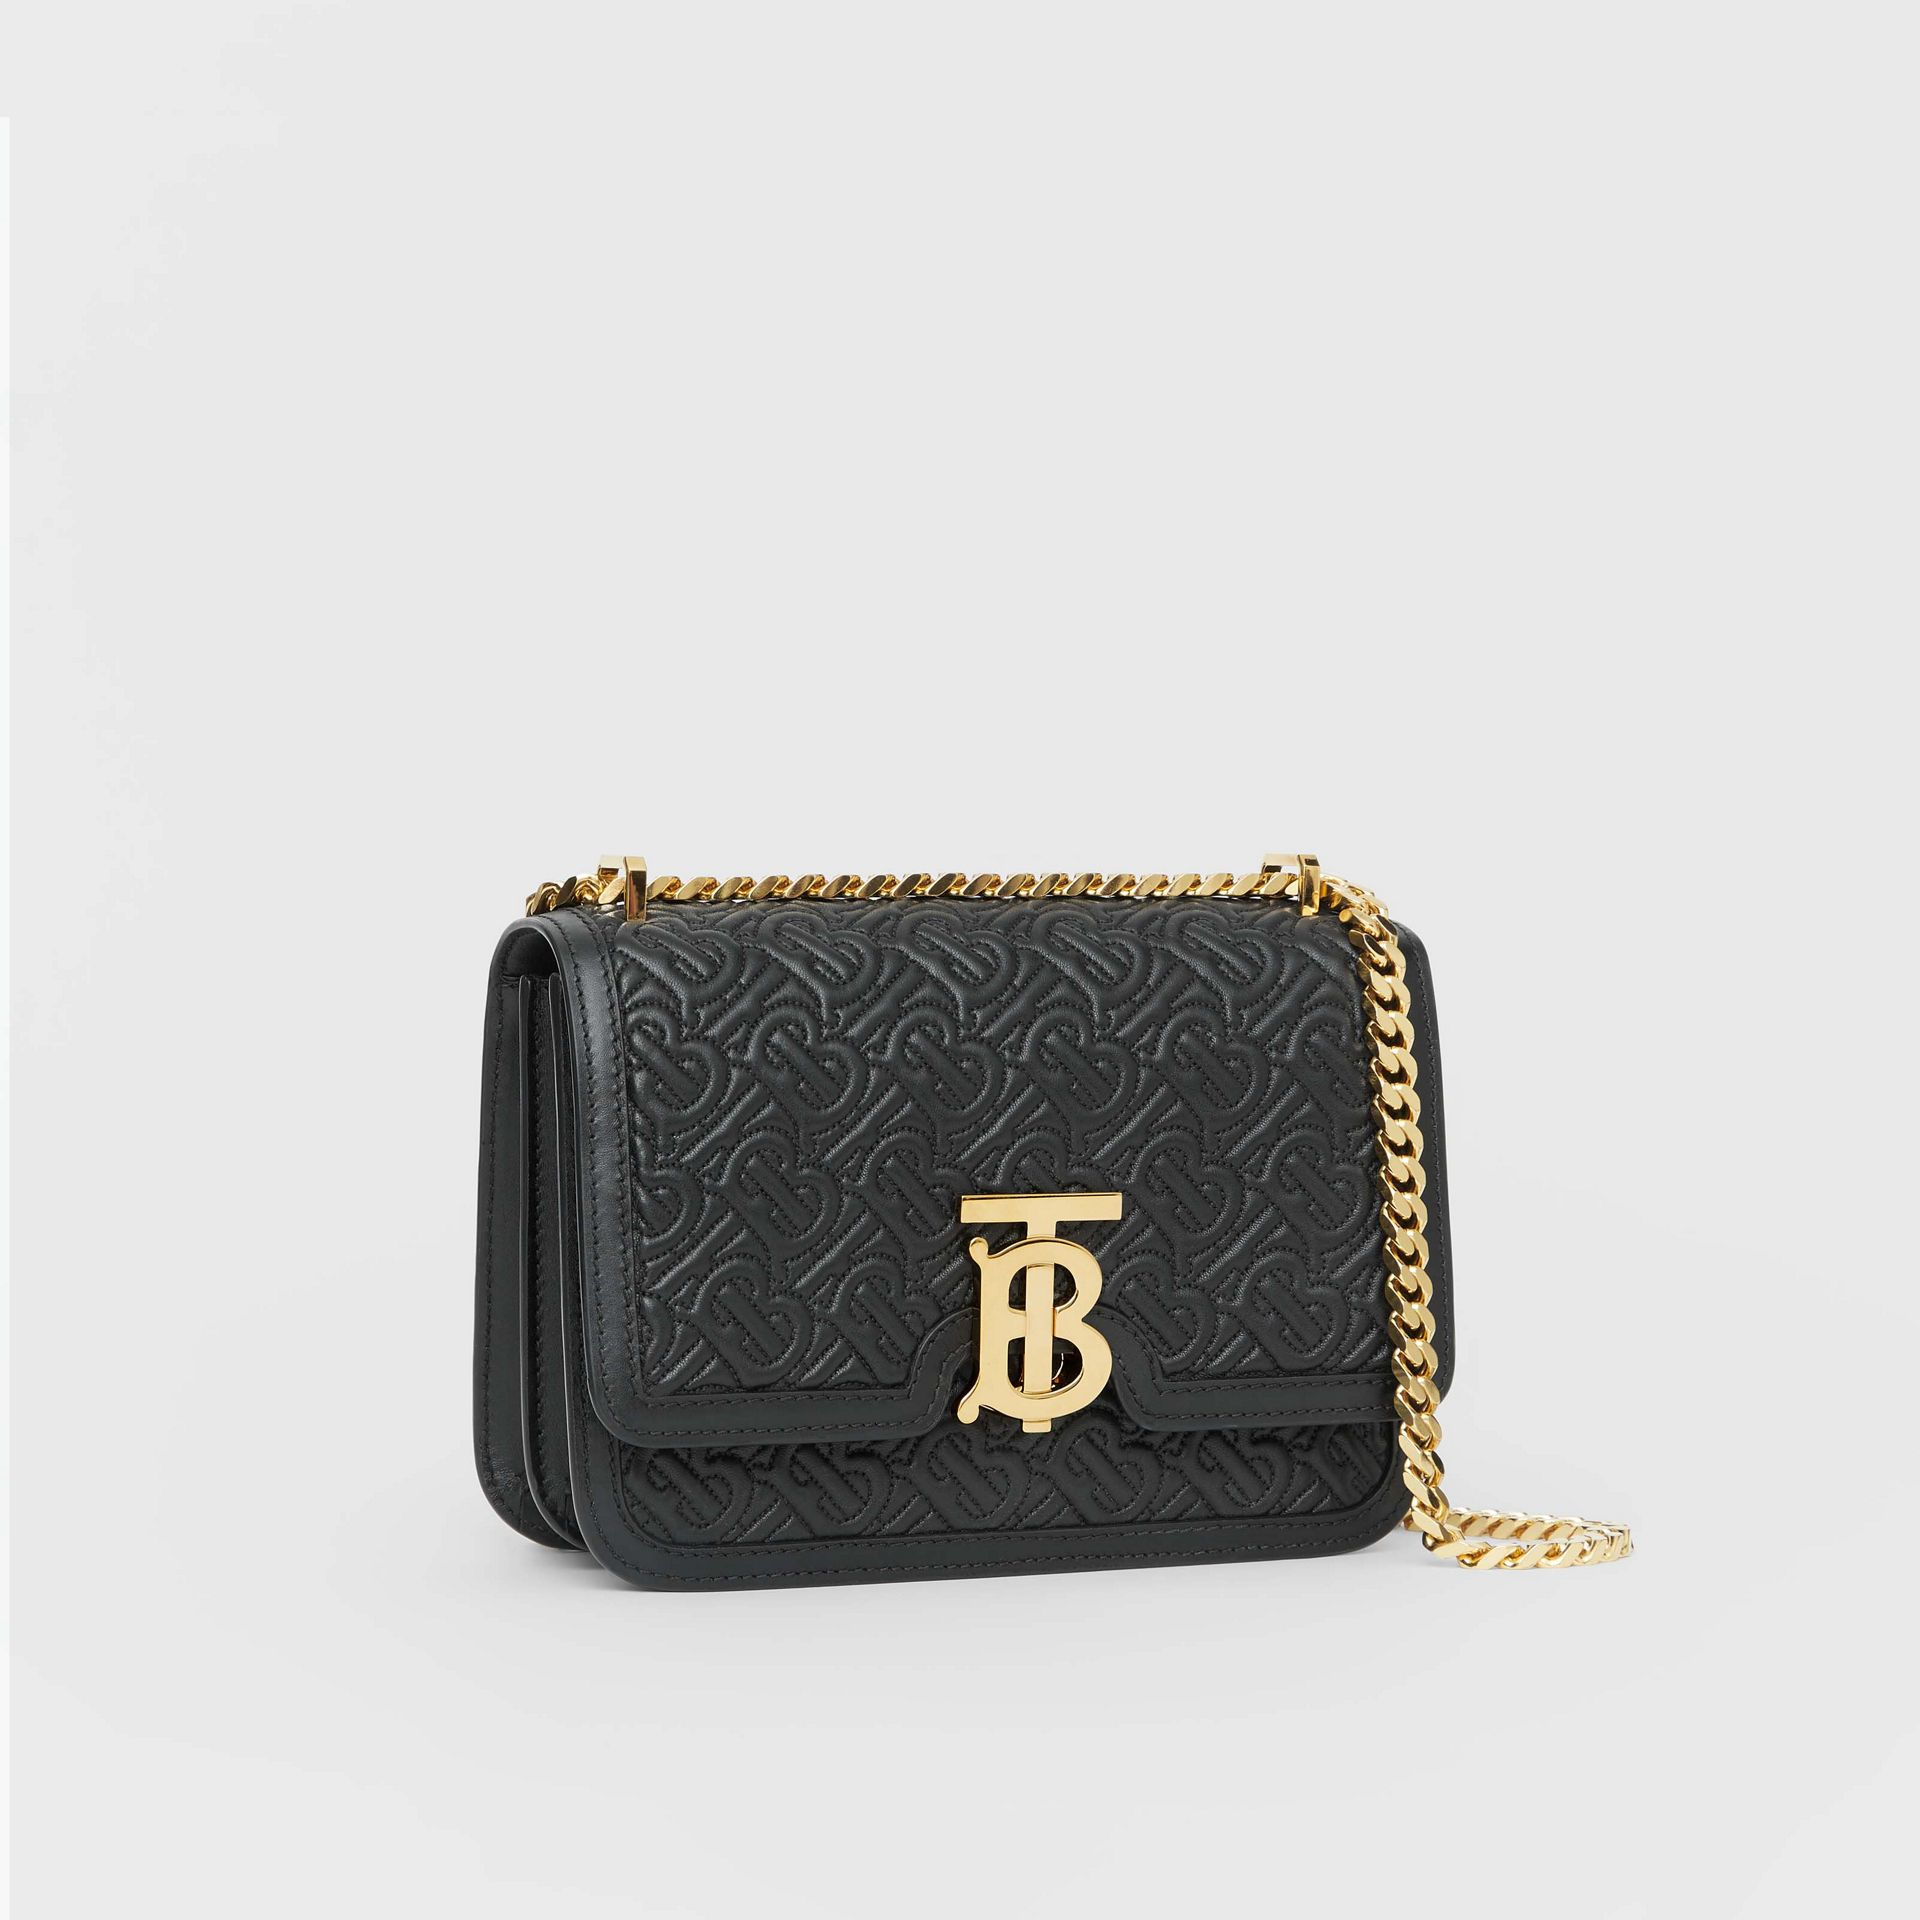 Small Quilted Monogram Lambskin TB Bag in Black - Women | Burberry United States - gallery image 5